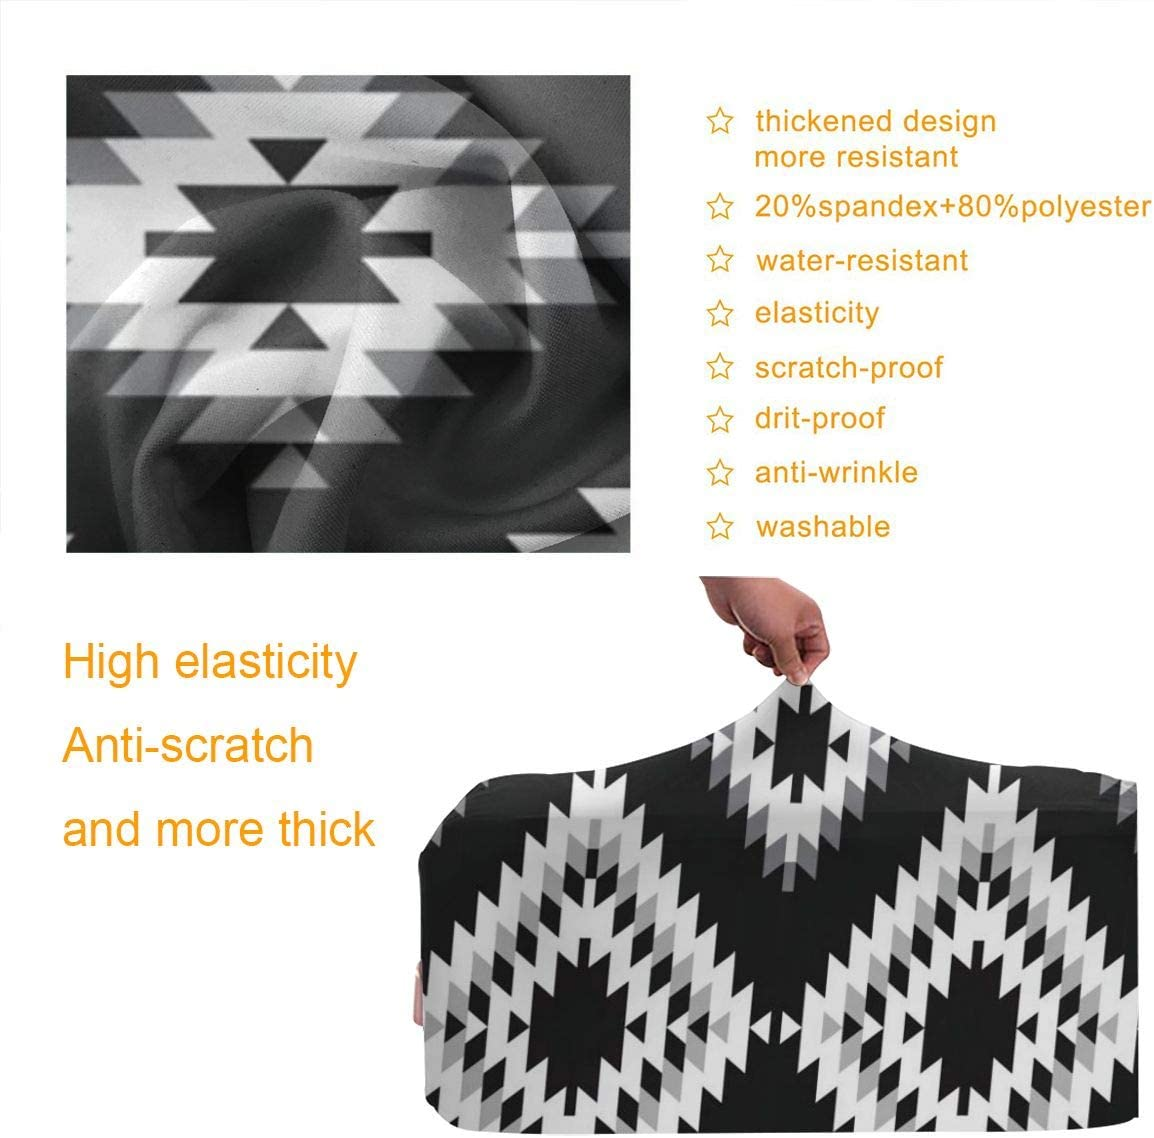 Pattern Rug Turkish White Gray Black Patchwork XL 18-32 Inch luggage Cute 3D Luggage Protector Suitcase Cover S M L XL